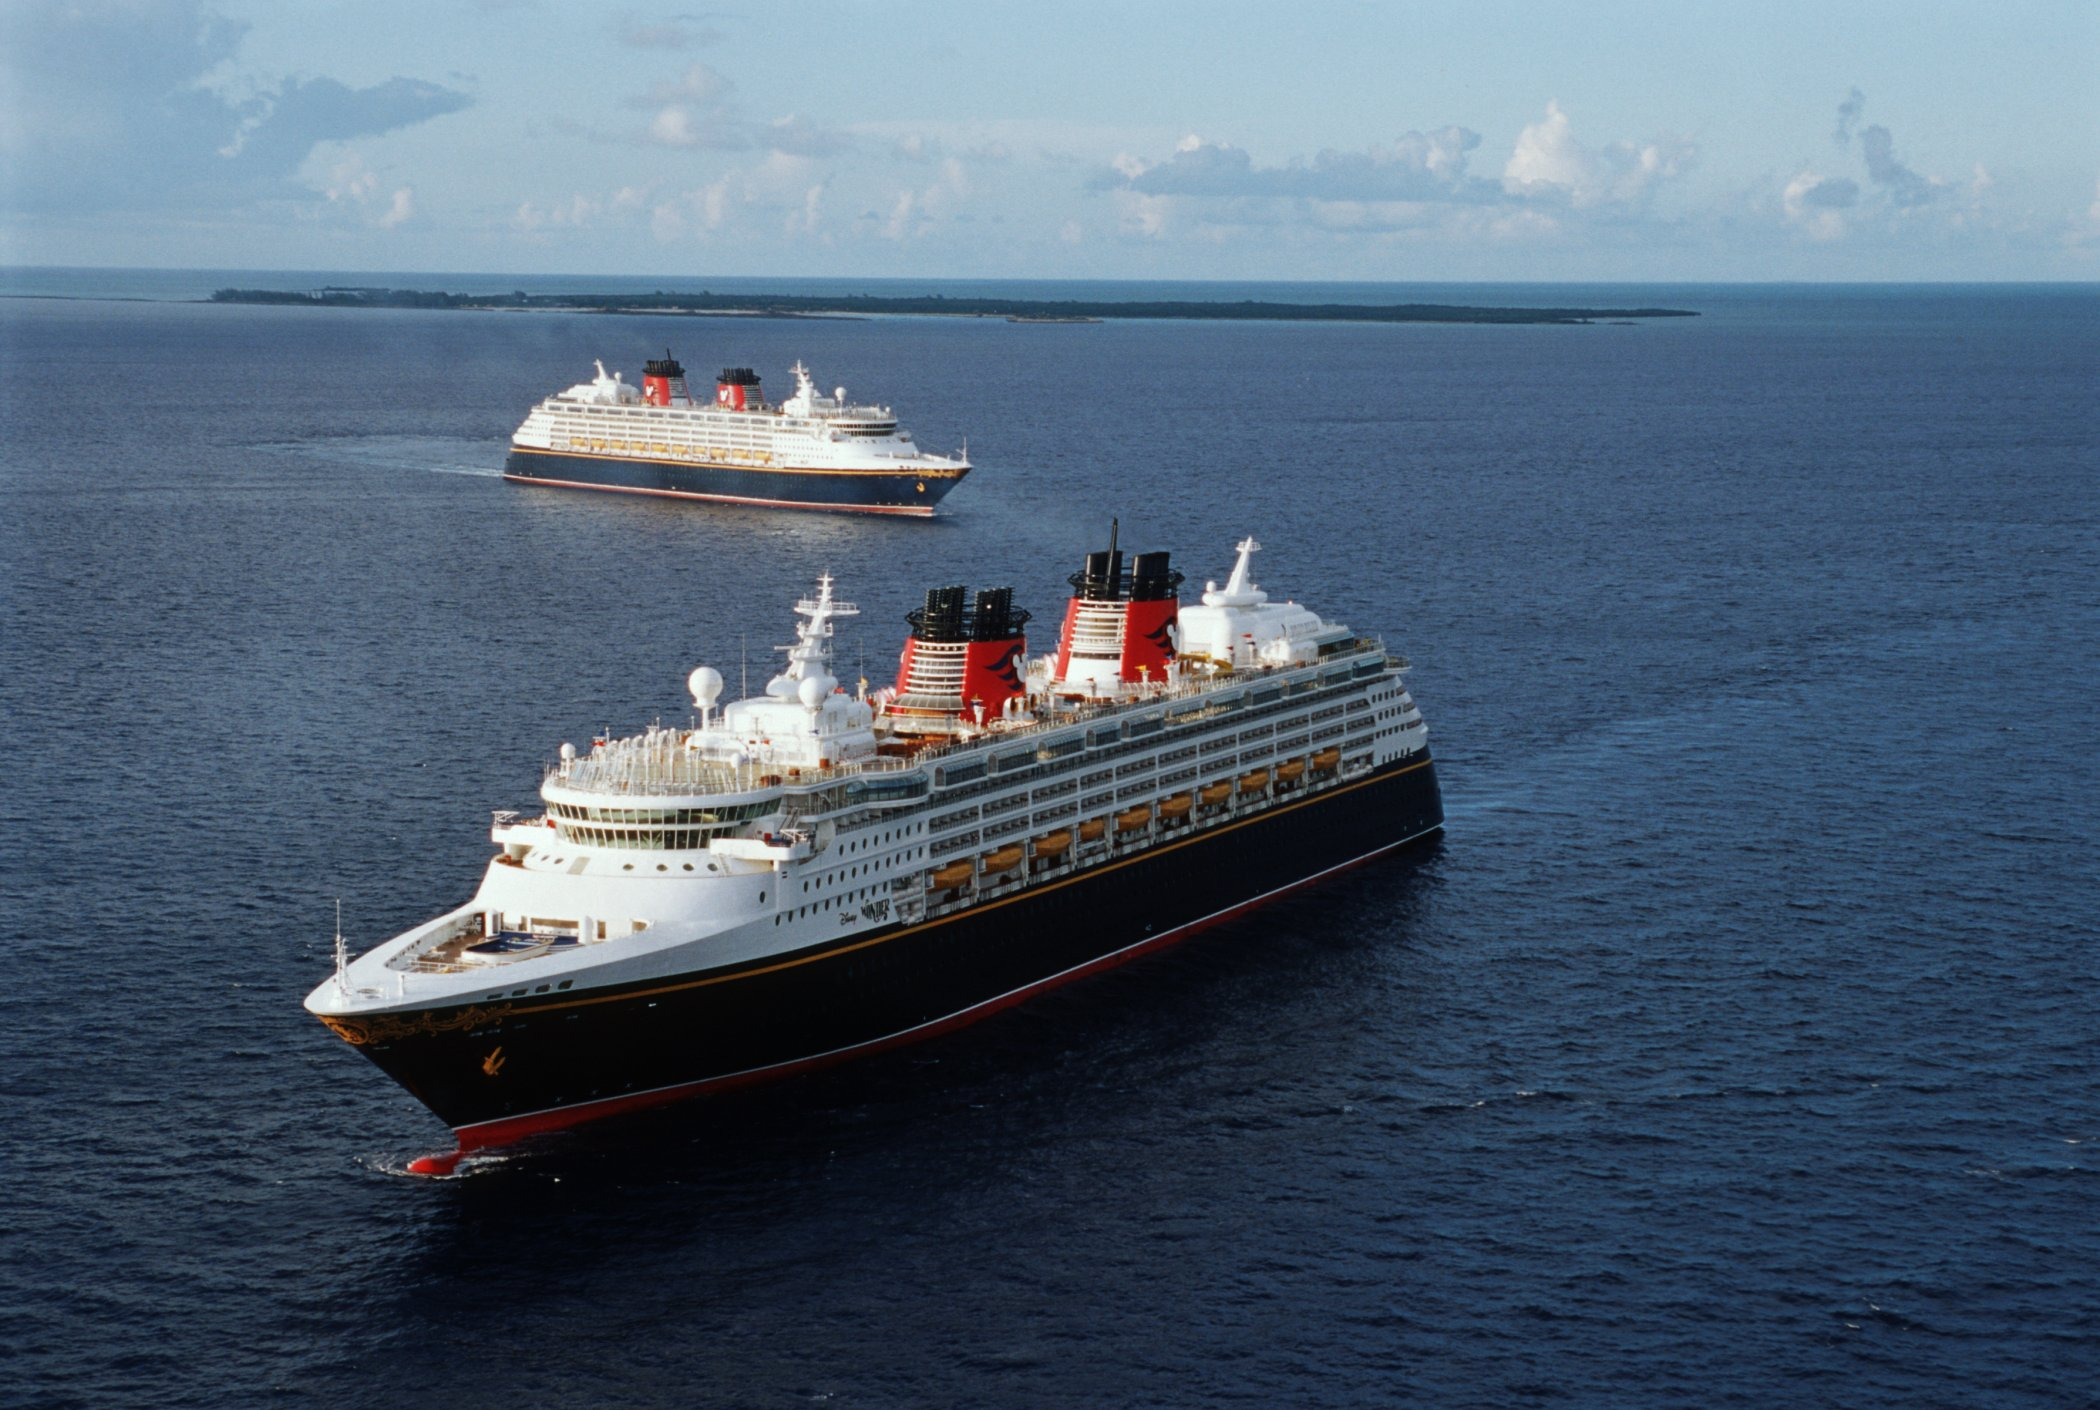 Disney Cruise Line, Disney travel agent, Disney travel planning